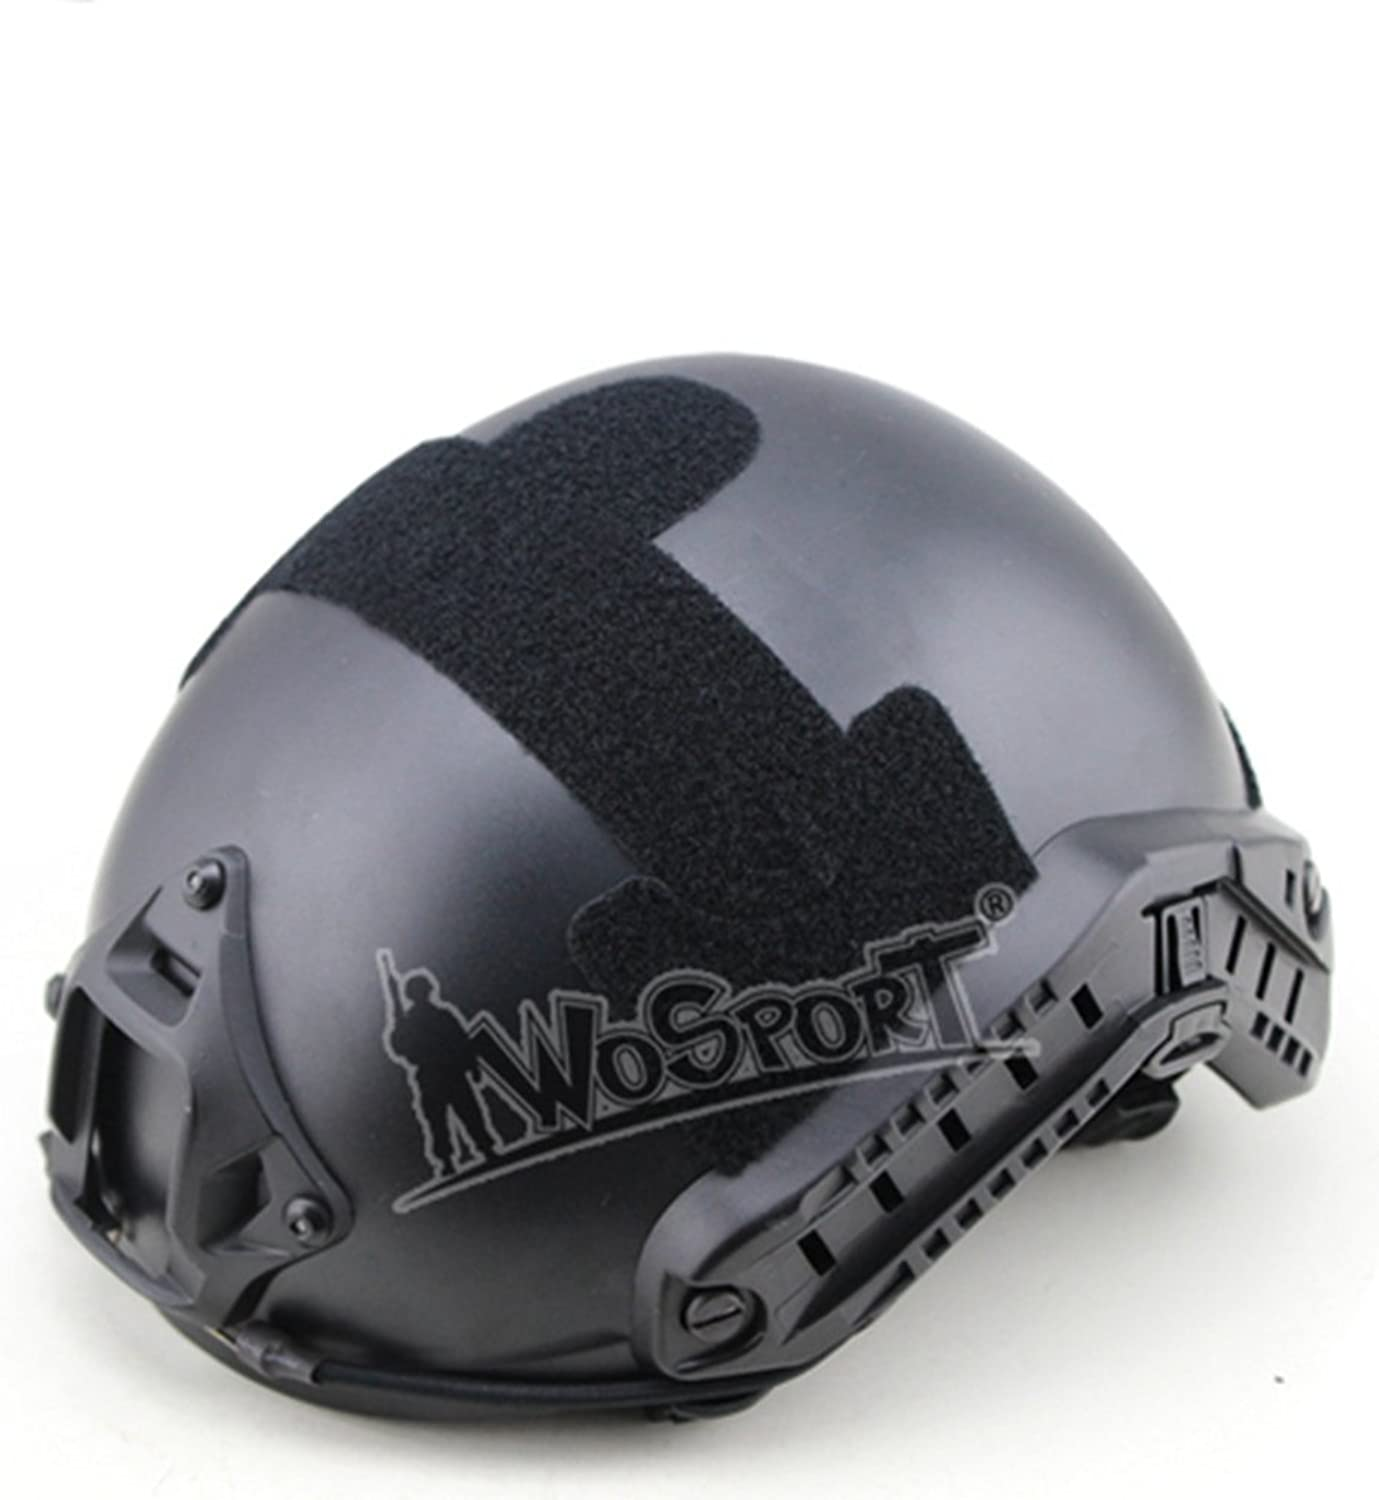 FAST MH Tactical ABS Plastic Airsoft Multicam Predetive Helmet for Youth  Advanced Version